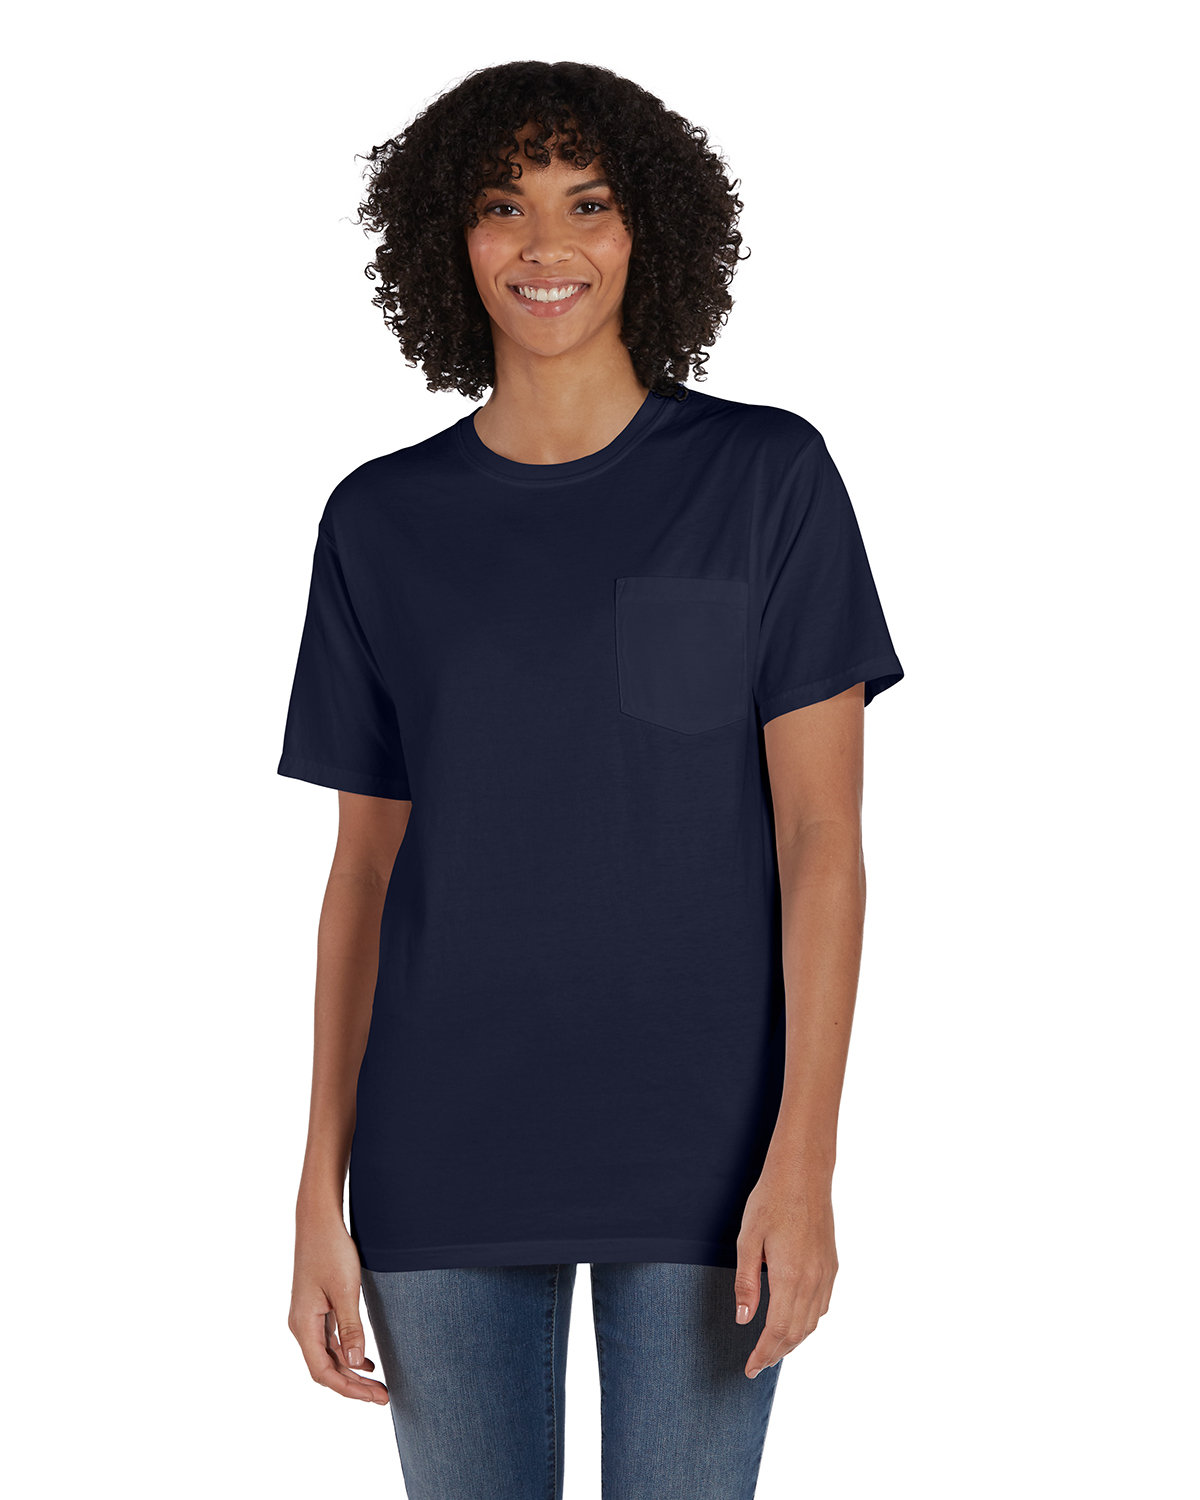 ComfortWash by Hanes Unisex Garment-Dyed T-Shirt with Pocket NAVY